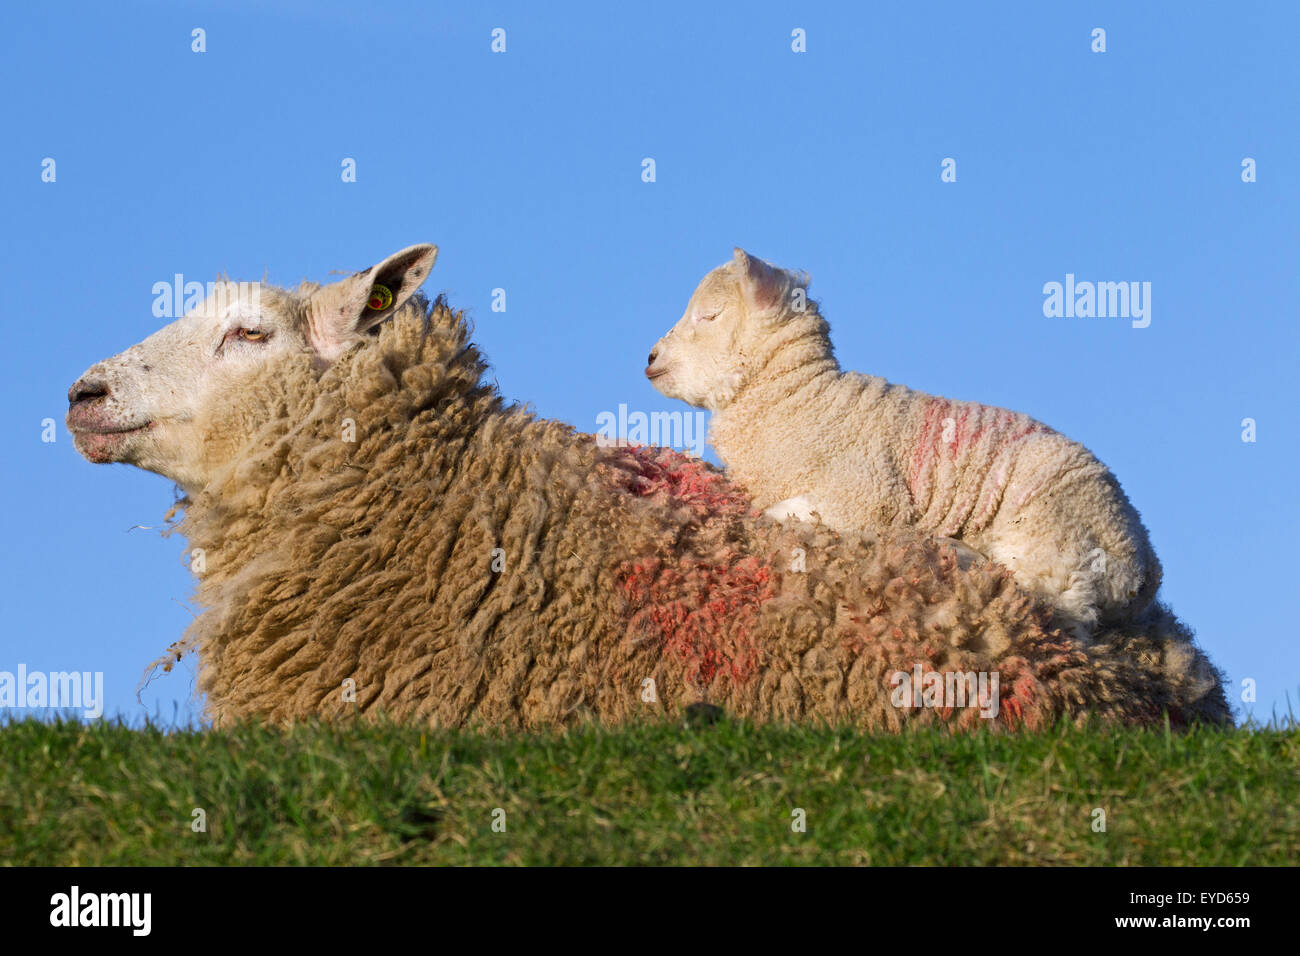 Friesian dairy sheep ewe with white lamb resting on its back in meadow, North Frisia, Germany - Stock Image